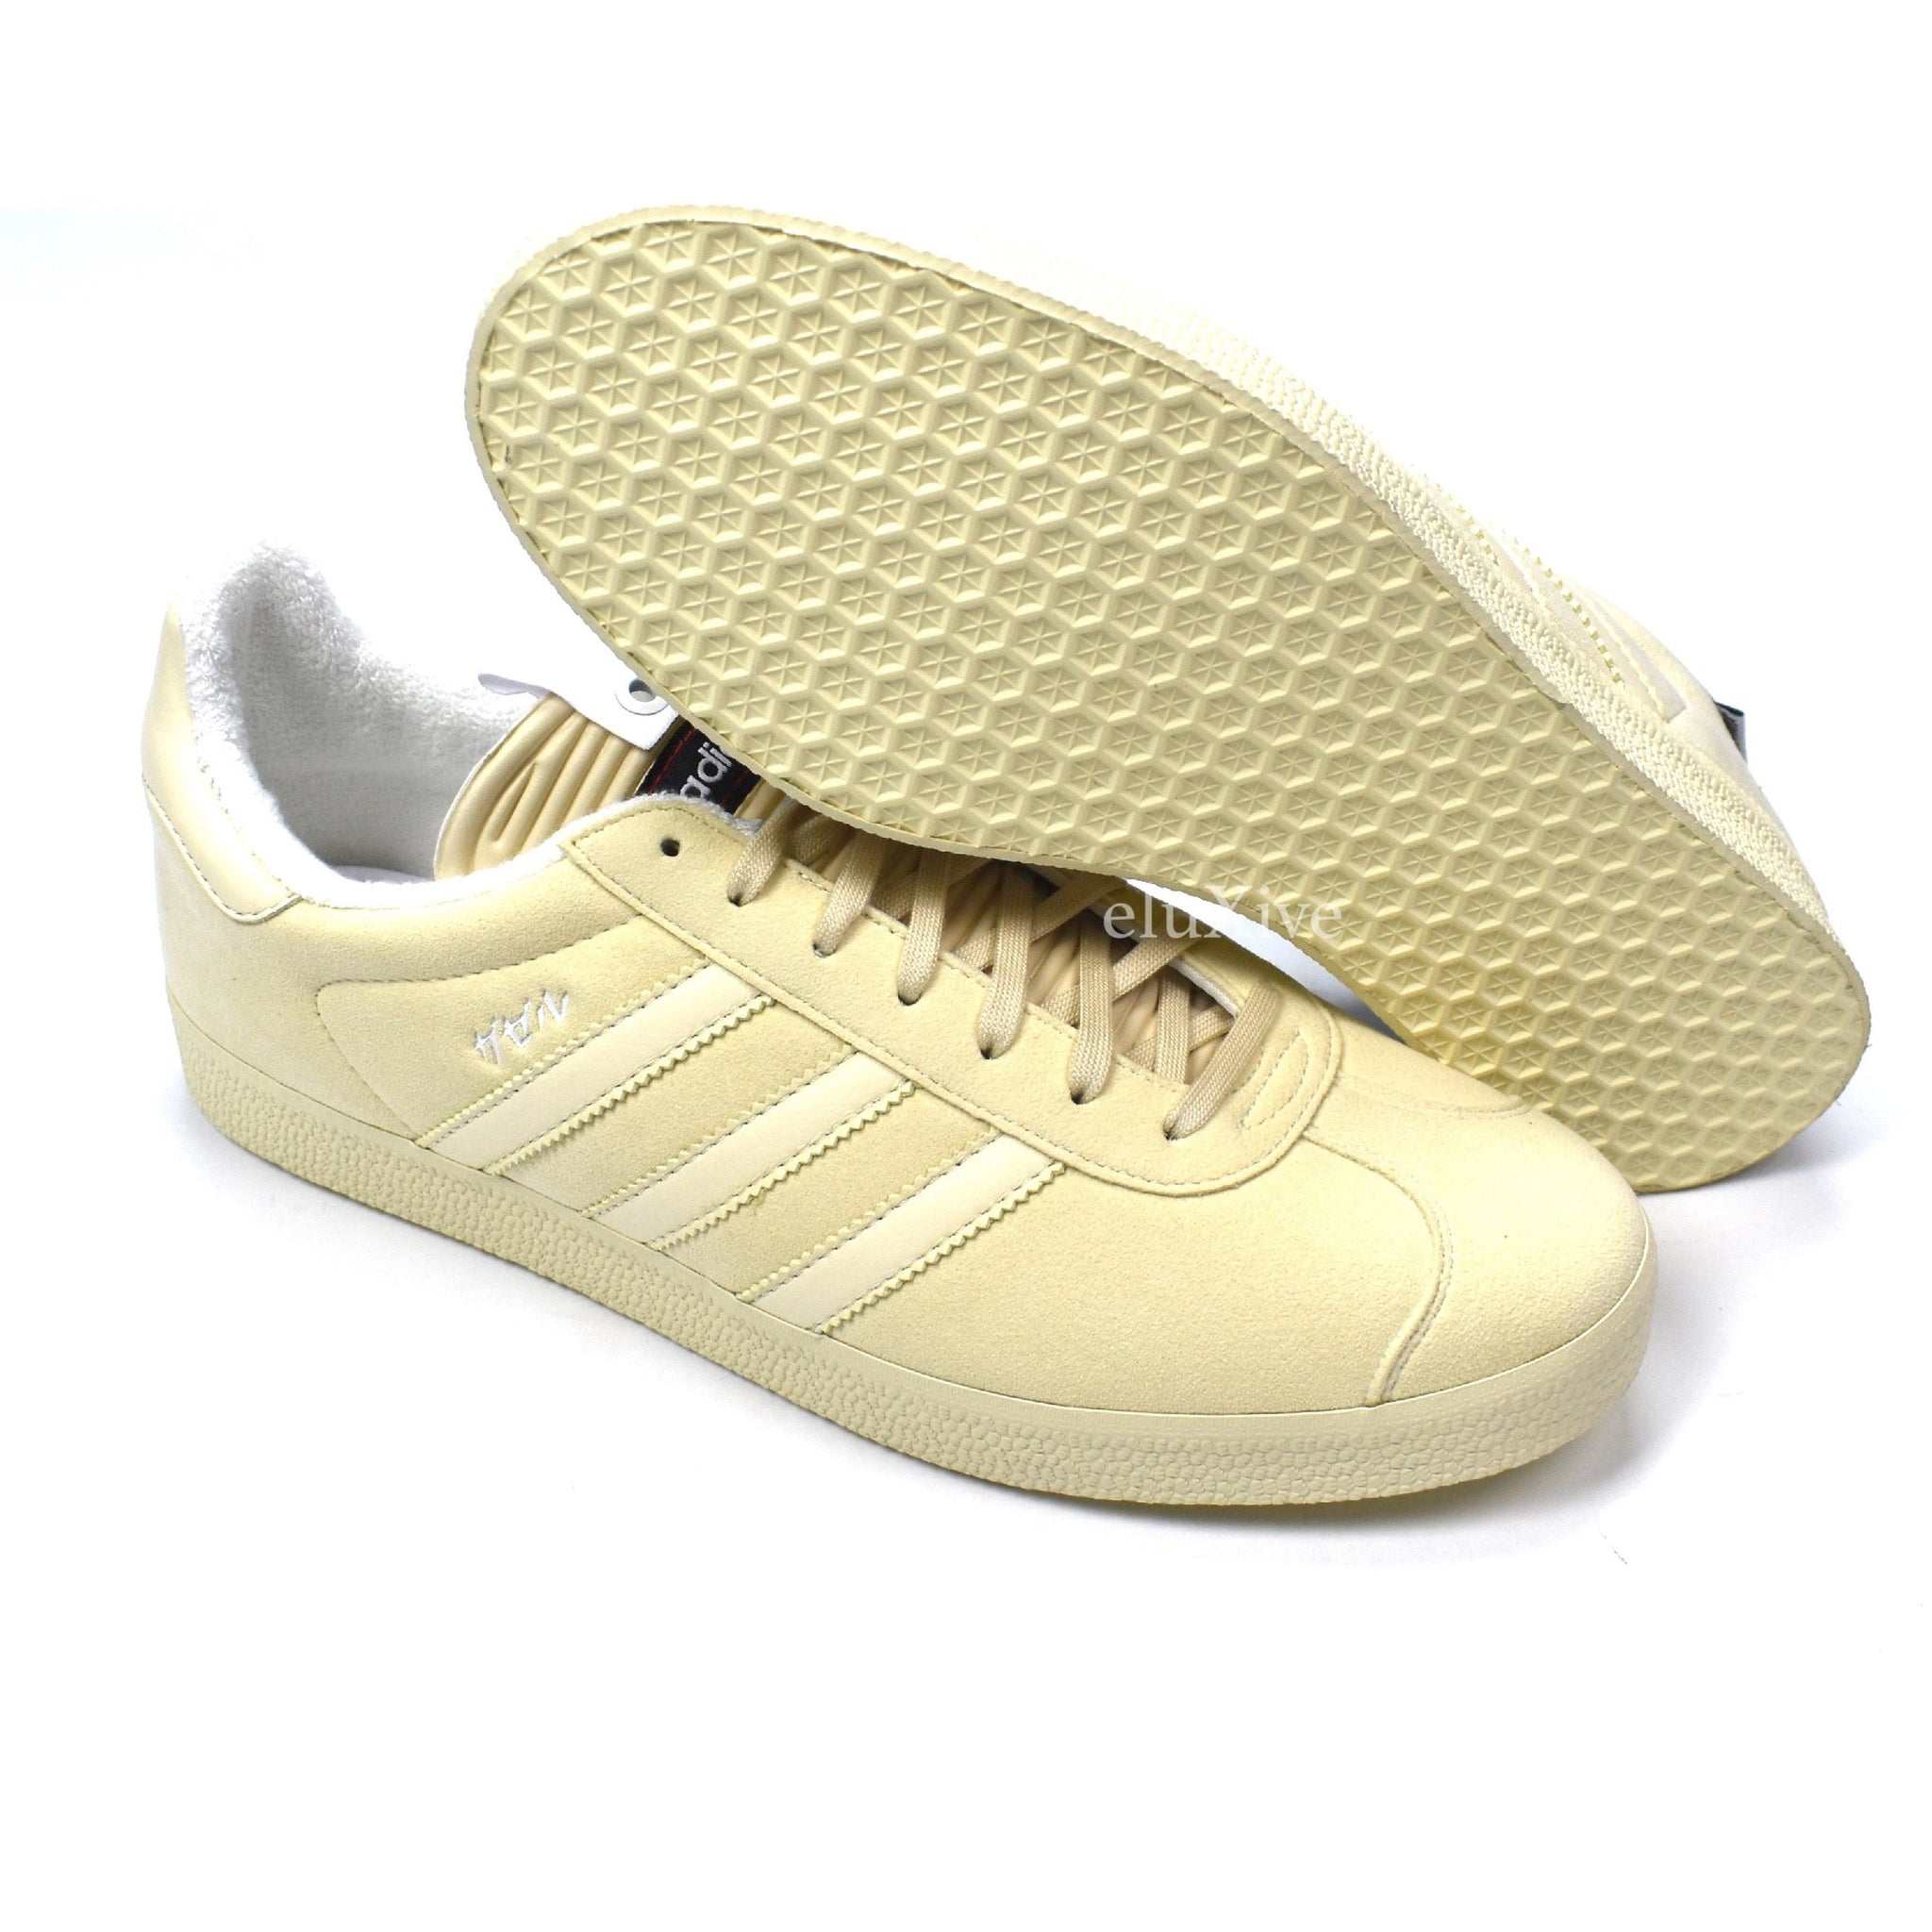 Adidas x Slam Jam - Gazelle SE 'United Arrows'